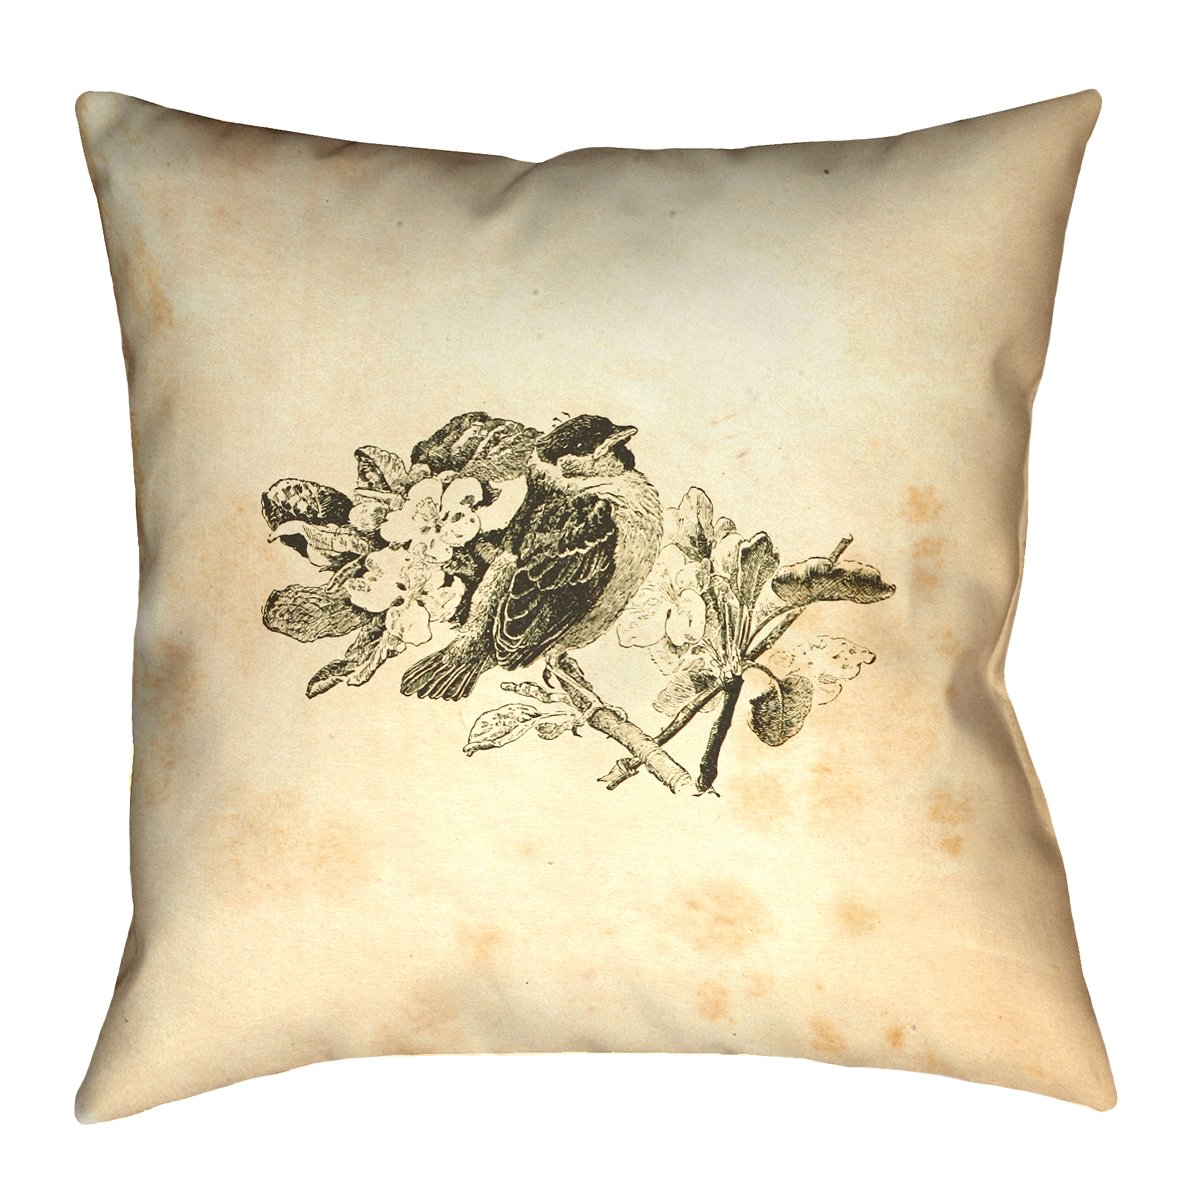 ArtVerse Katelyn Smith 36' x 36' Floor Double Sided Print with Concealed Zipper & Insert Vintage Sepia Bird Pillow SMI133F3636L